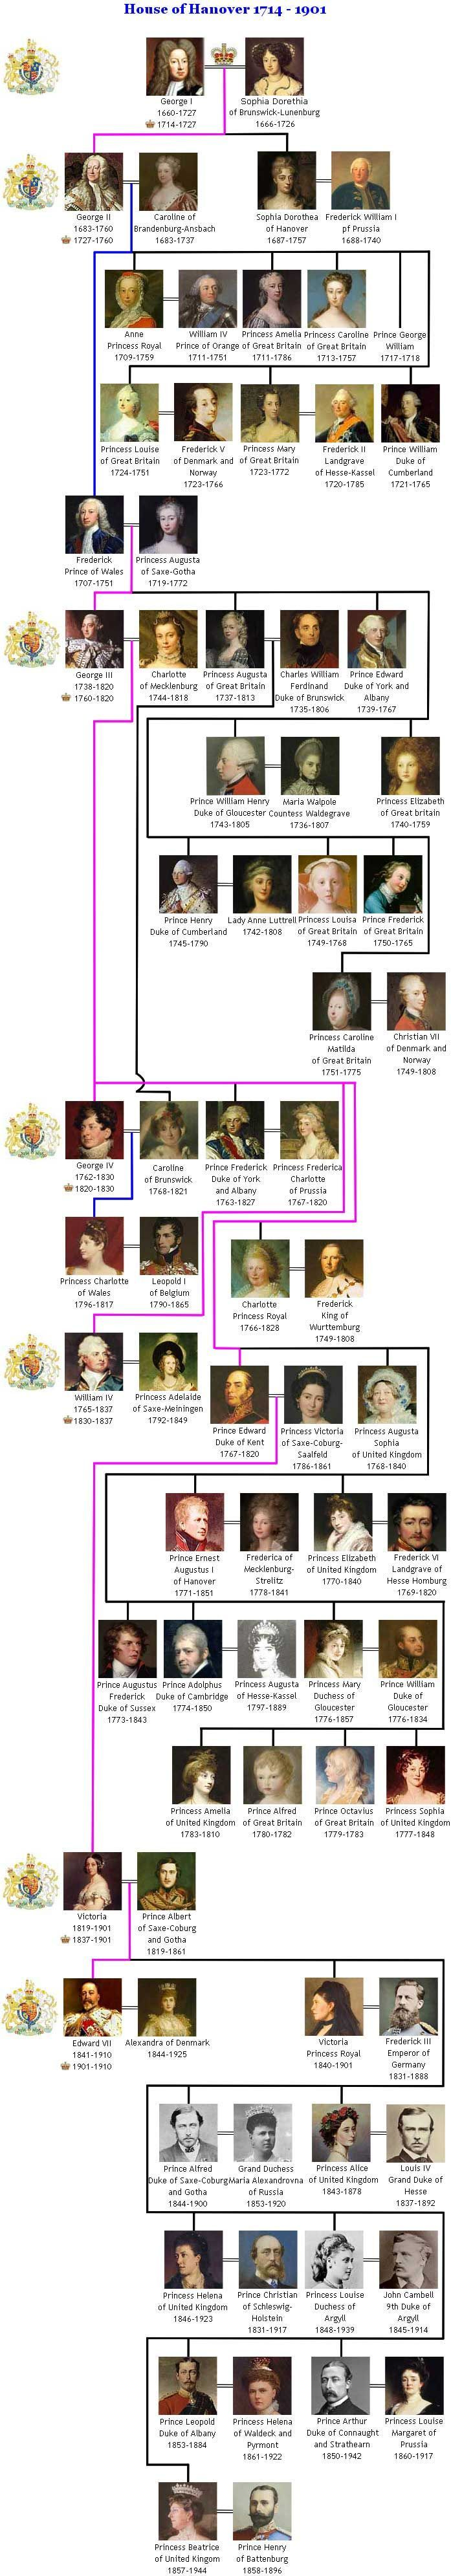 migliori idee su british royal family tree su great britain the royal house of hanover was the first dynasty in great britain